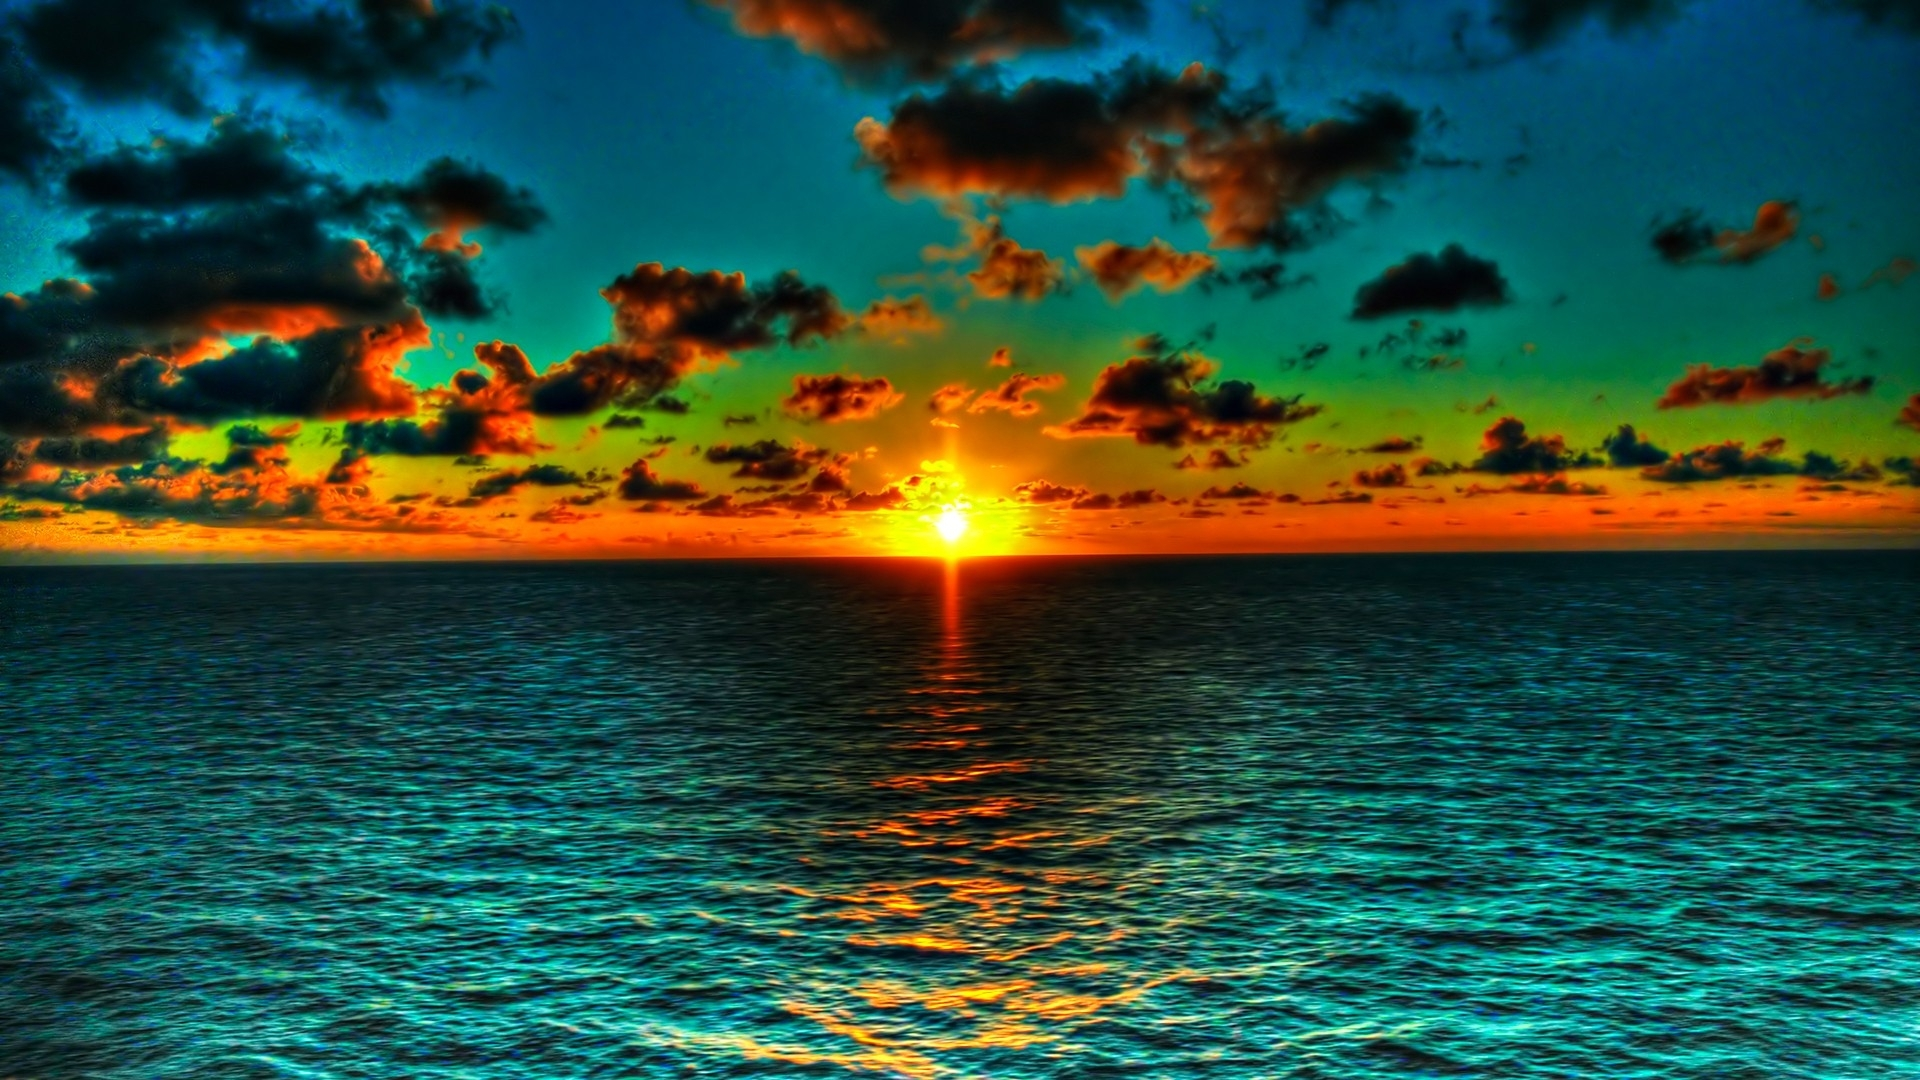 Gorgeous Ocean Sunset Wallpaper 1920x1080 15464